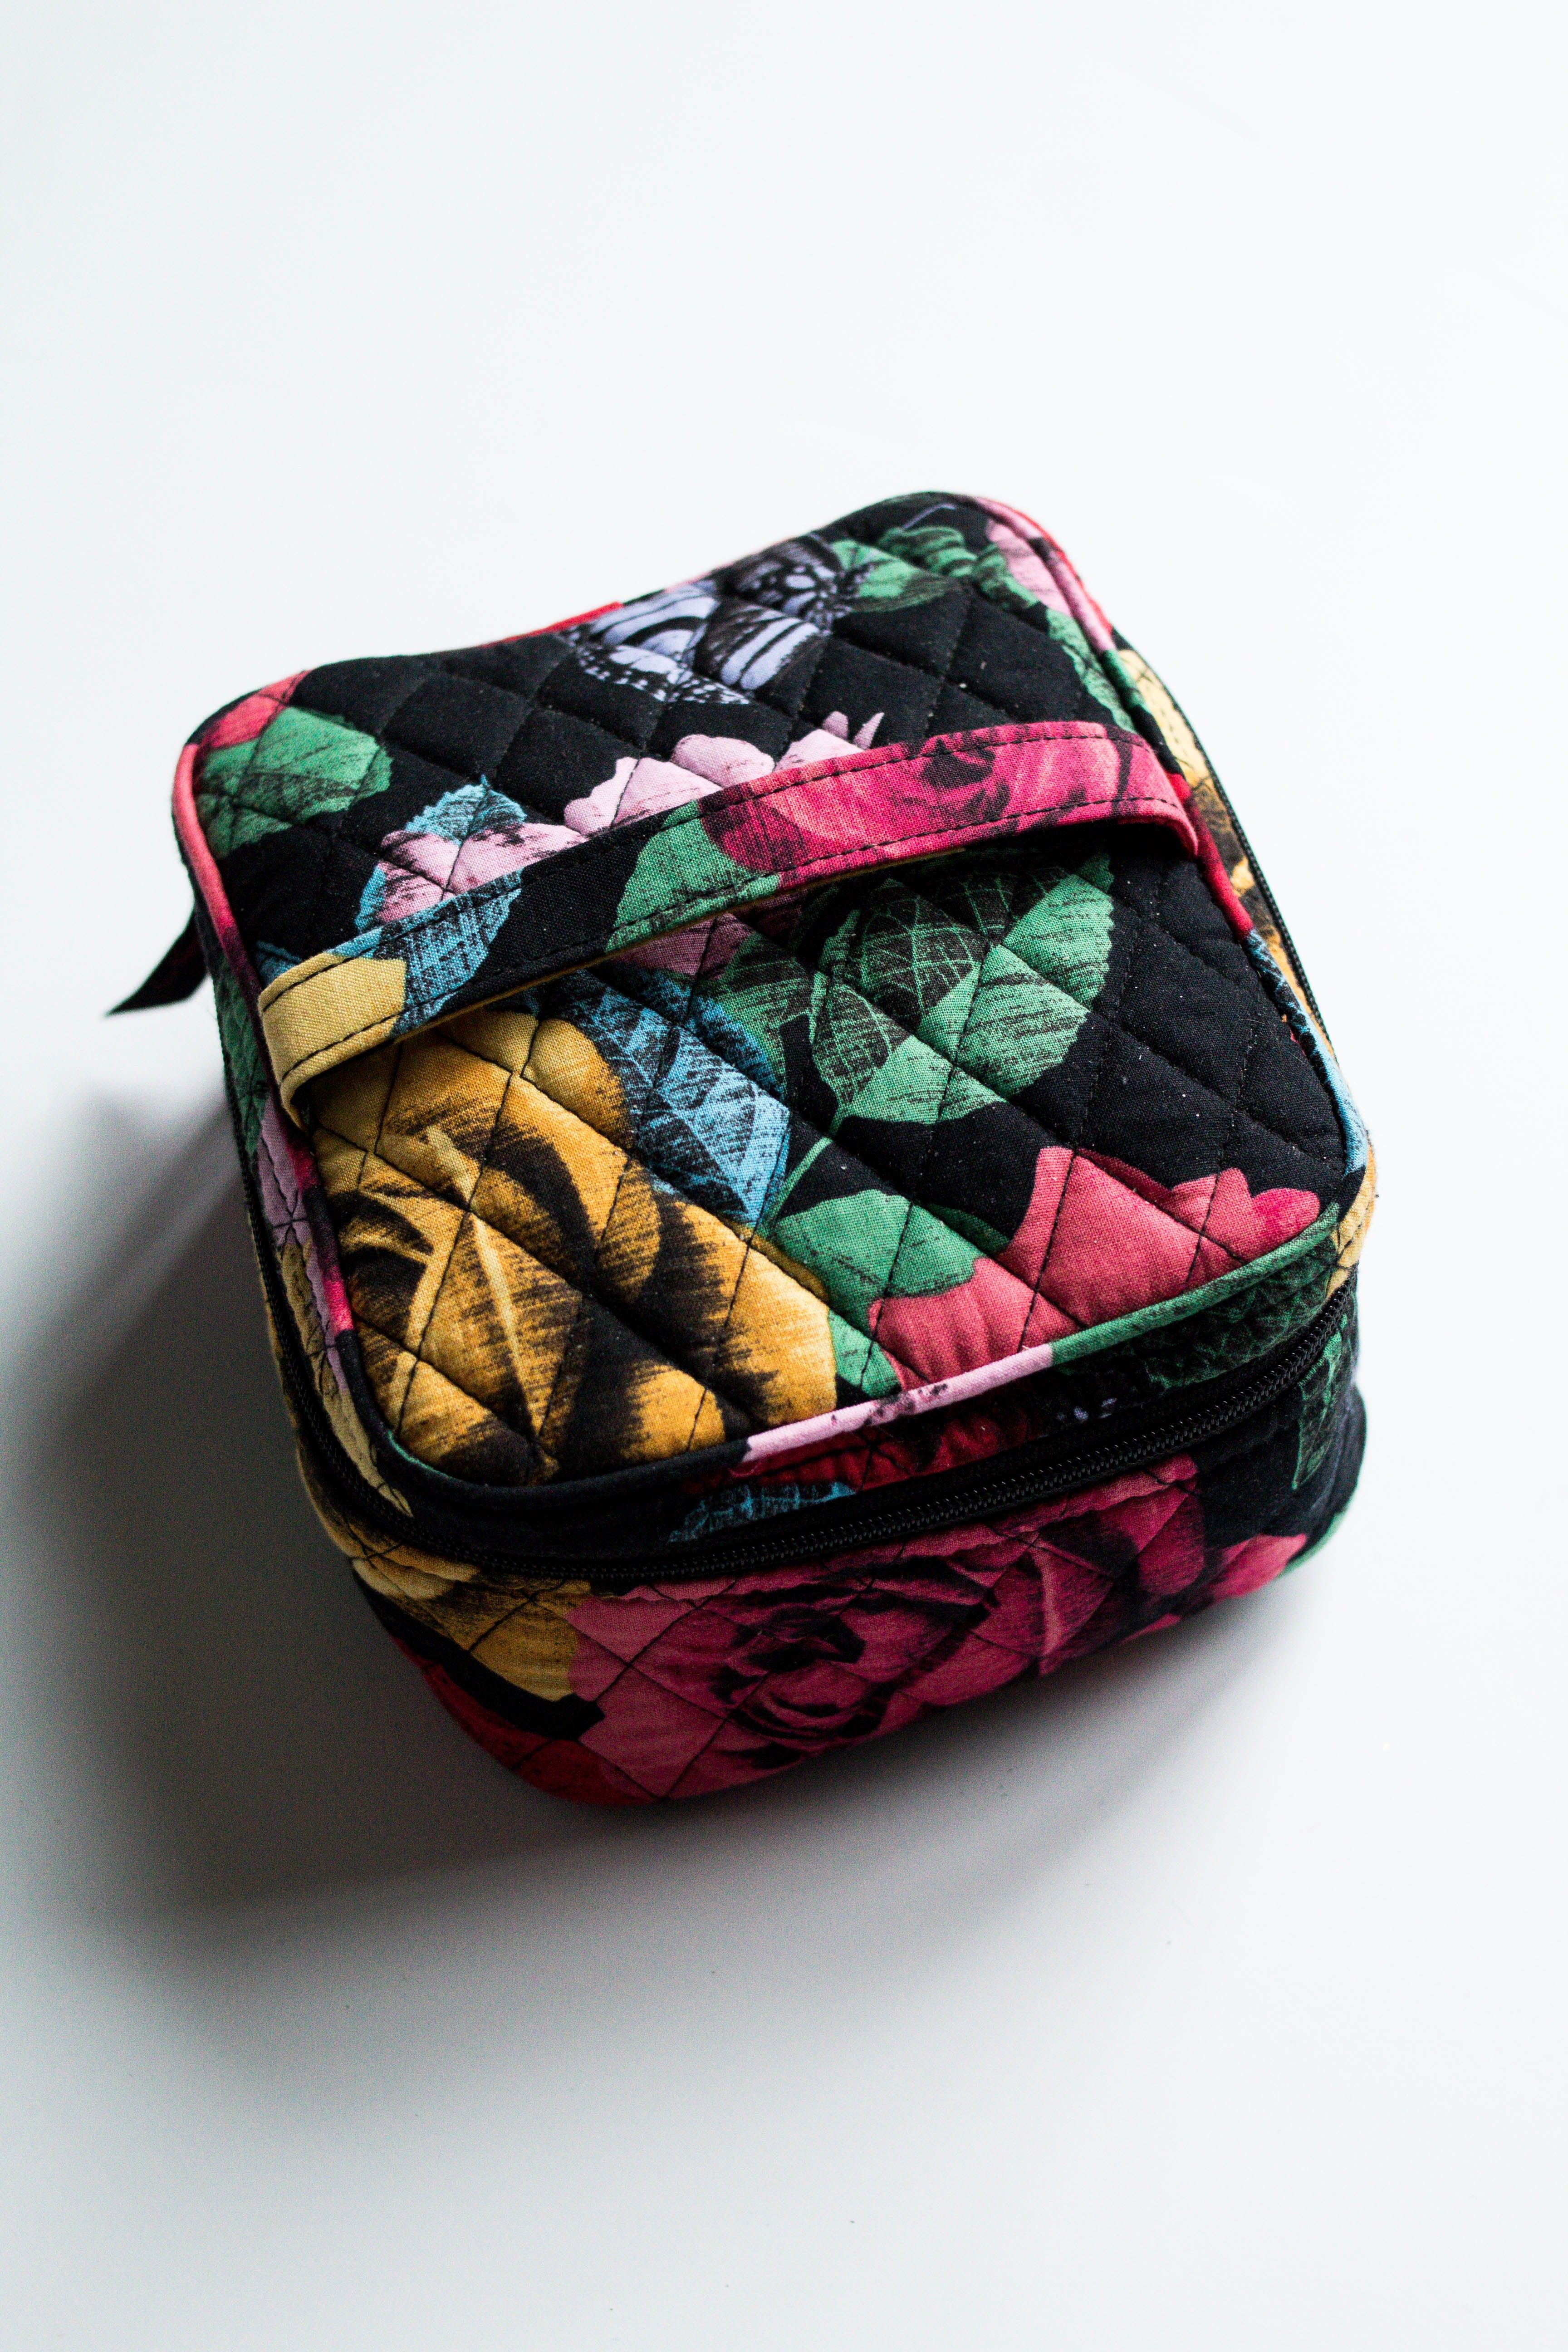 3858b4263172 ... up the necessities for your toiletry bag plus the best holiday gifts to  get for the travel lover on your Christmas list.    vera bradley makeup  bag